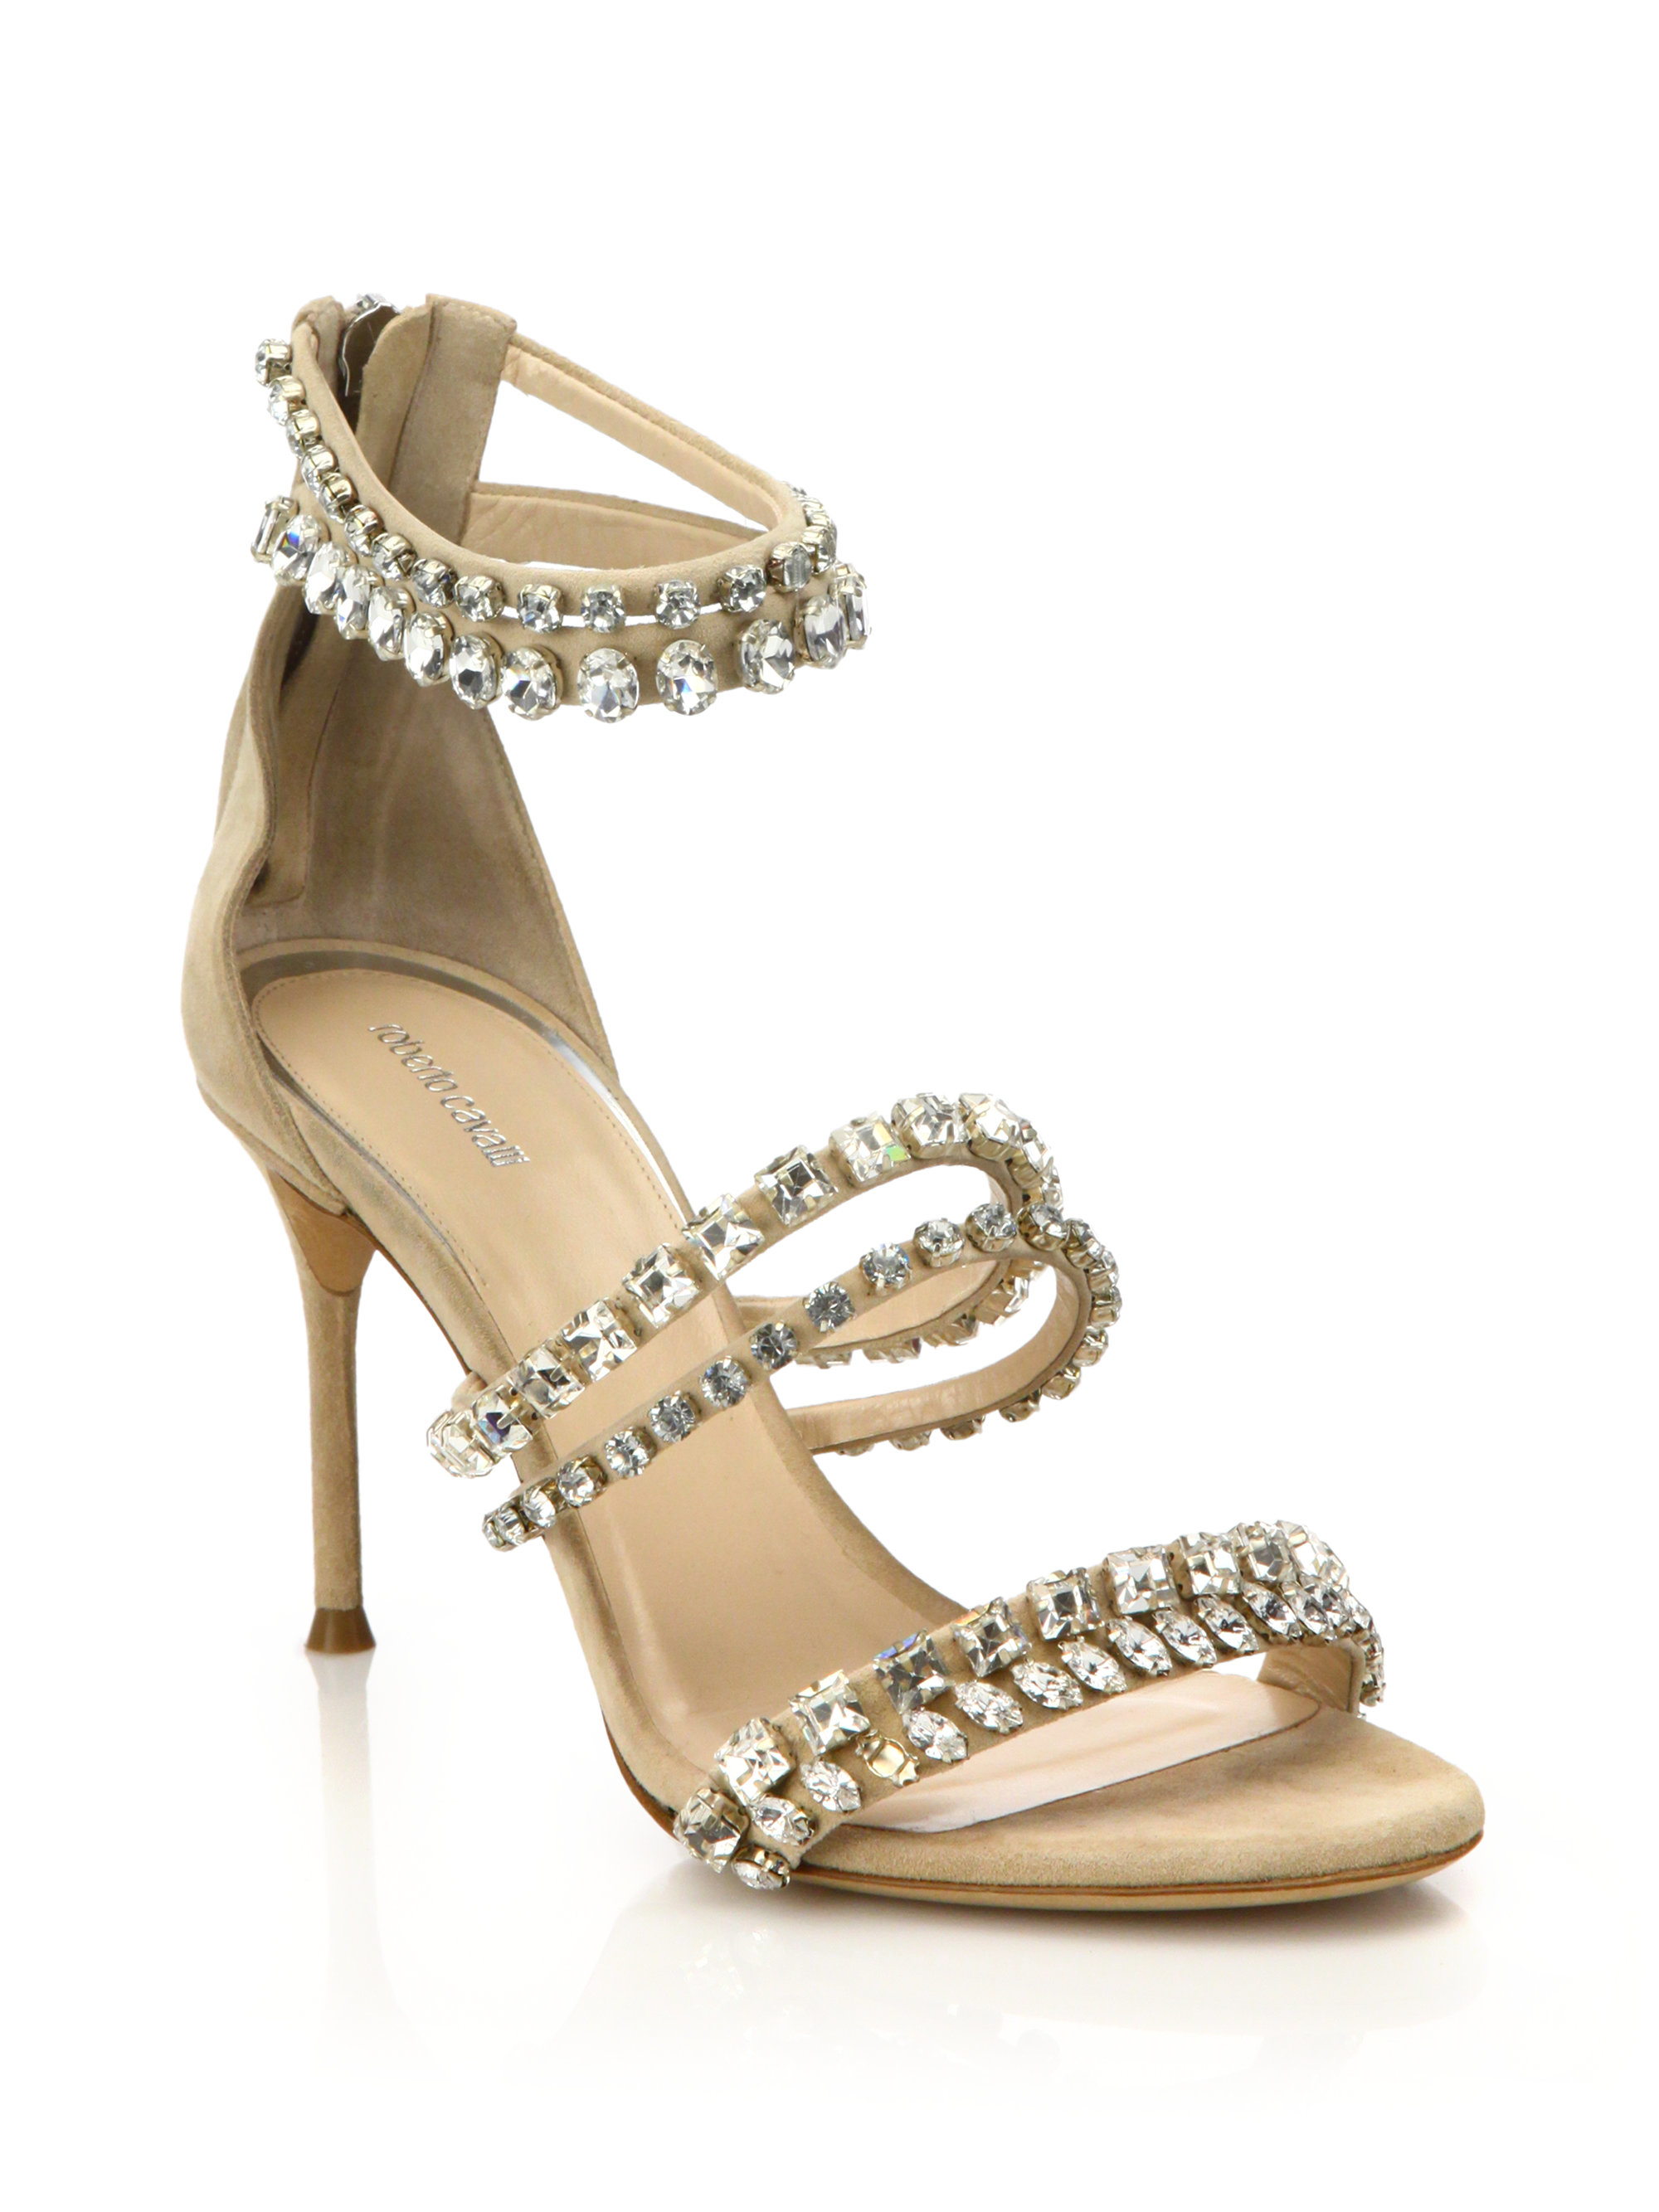 f52655d39 Shoes   Accessories Crystal-Embellished Sandals